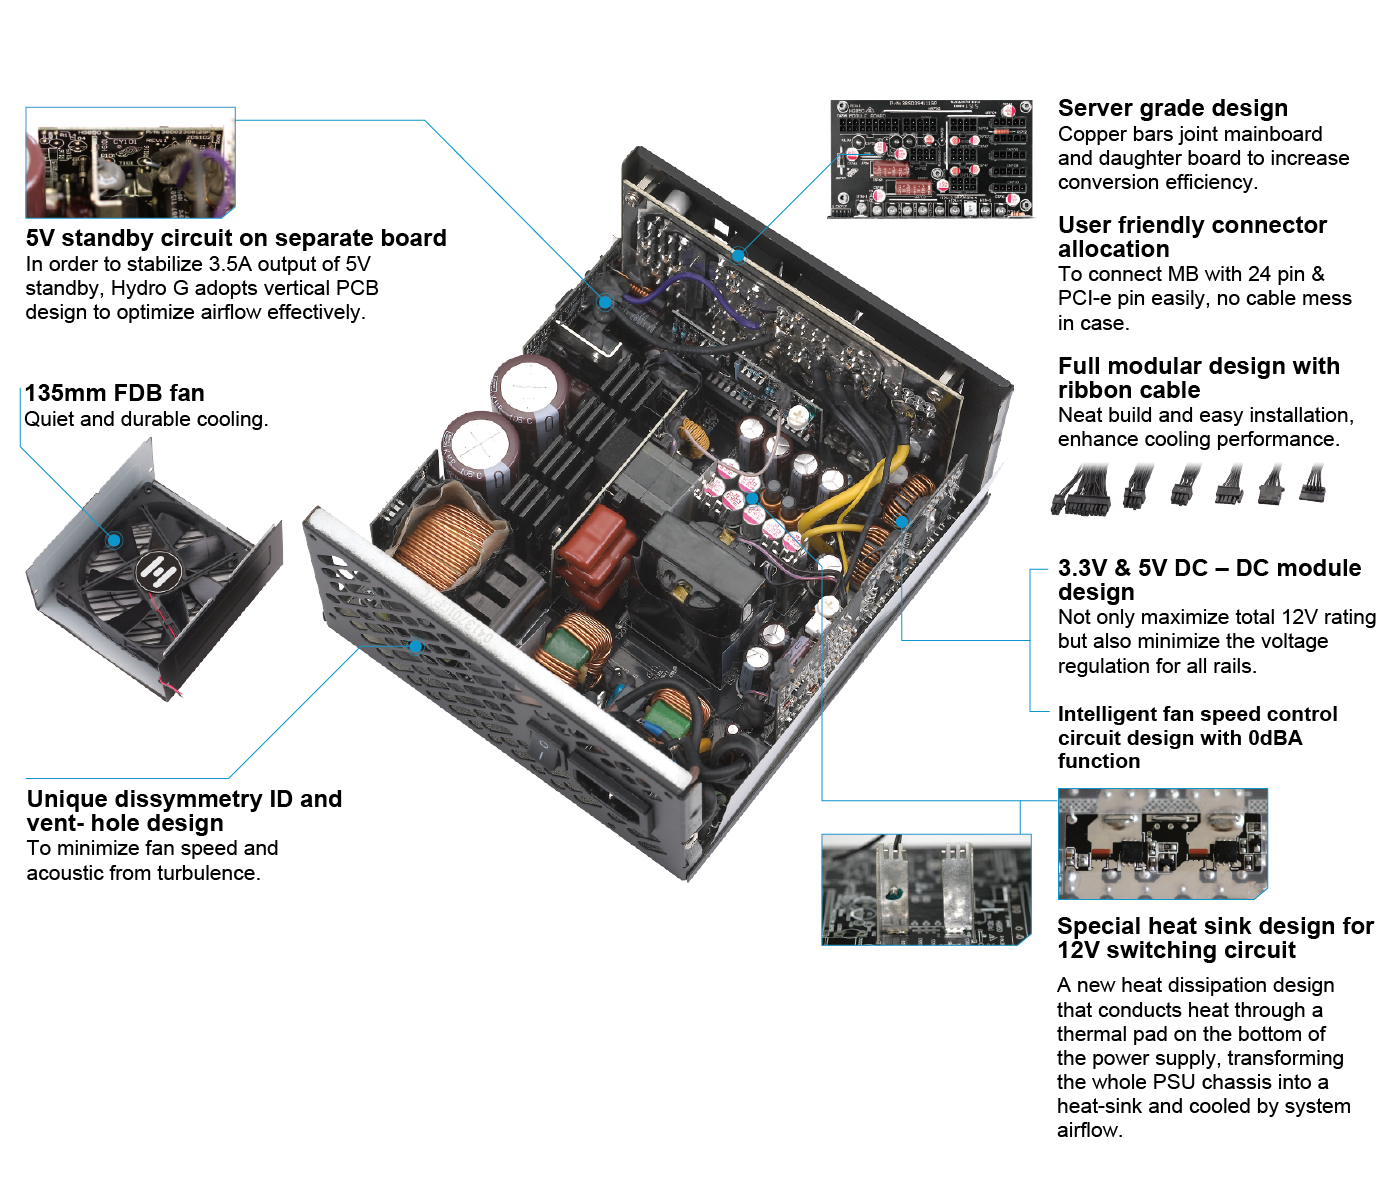 hydro-g_-_technical_overview